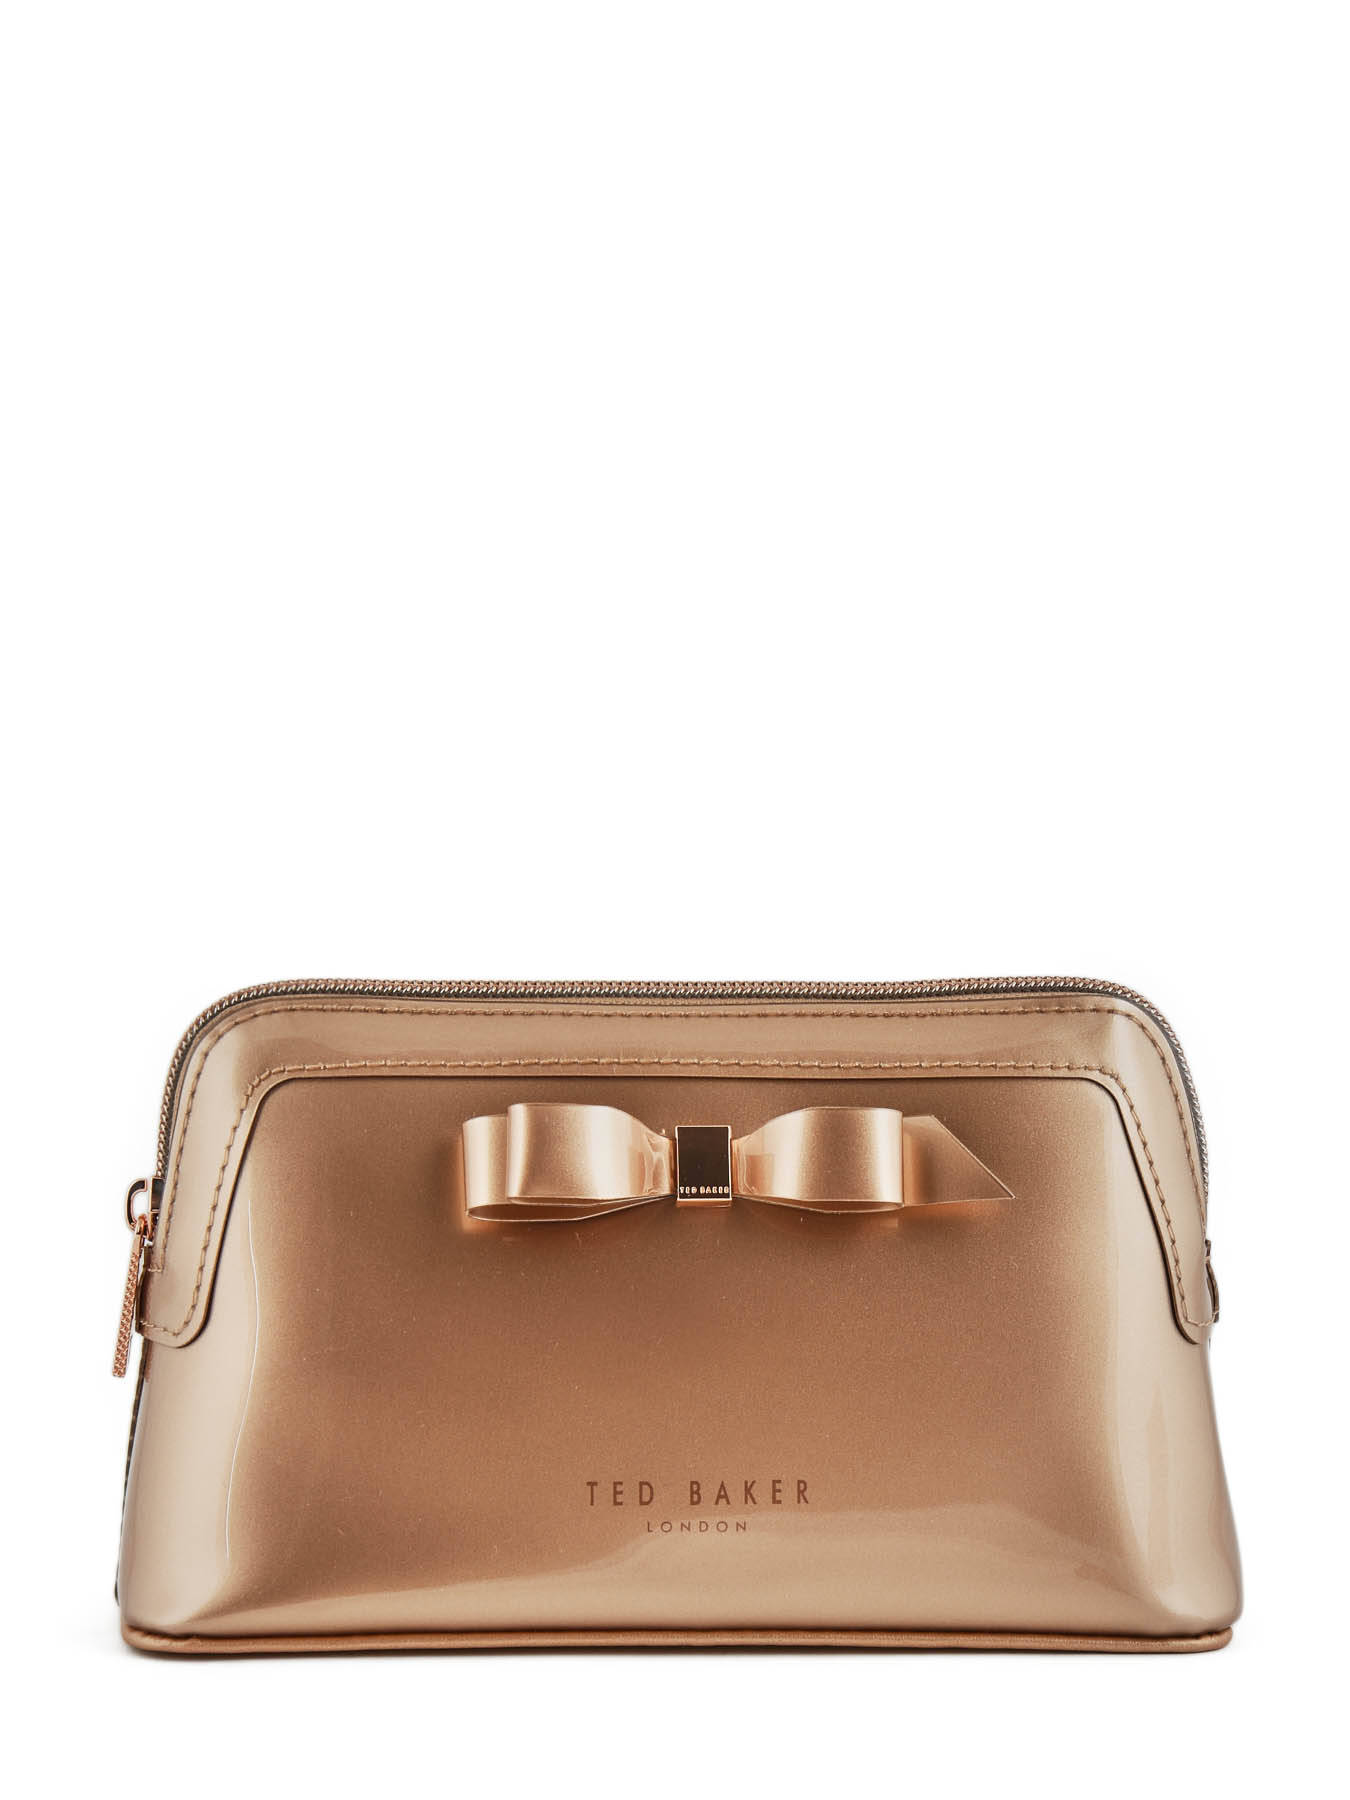 beb6d8ce0 ... Case Ted baker Black icon bag CAHIRA ...